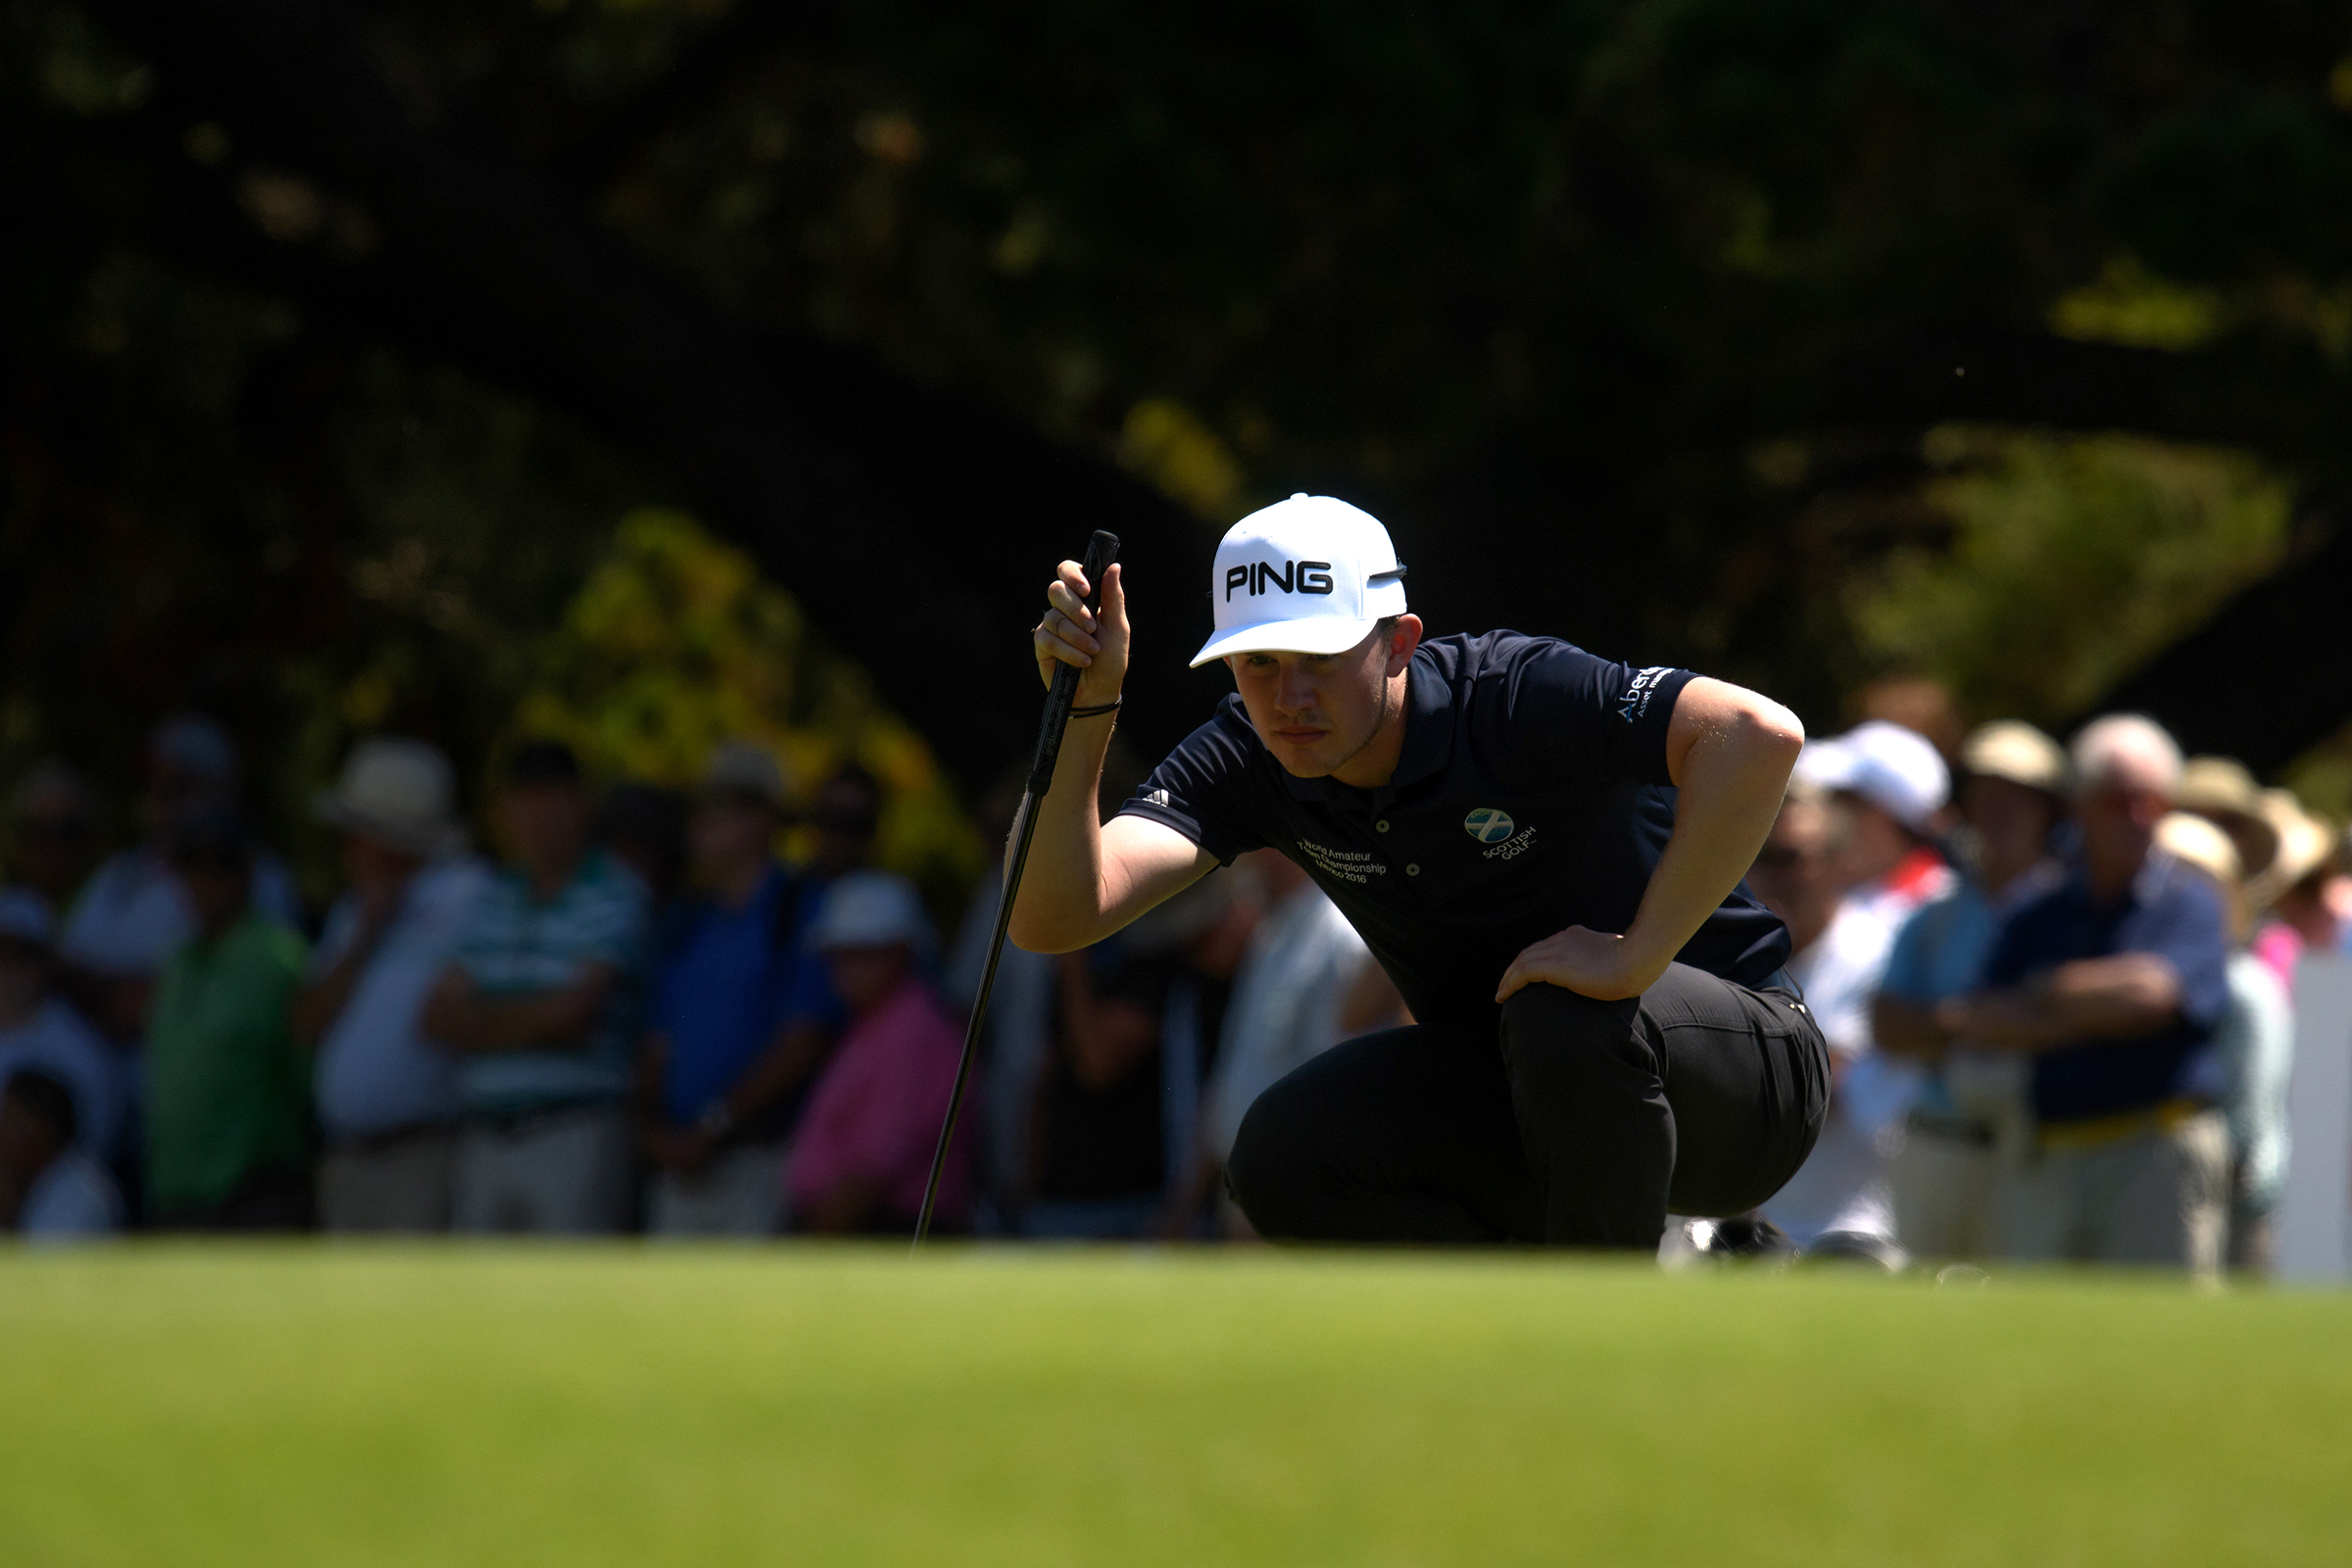 Drumoig's Connor Syme plays for GB&I in the Walker Cup at Los Angeles Country Club this weekend.